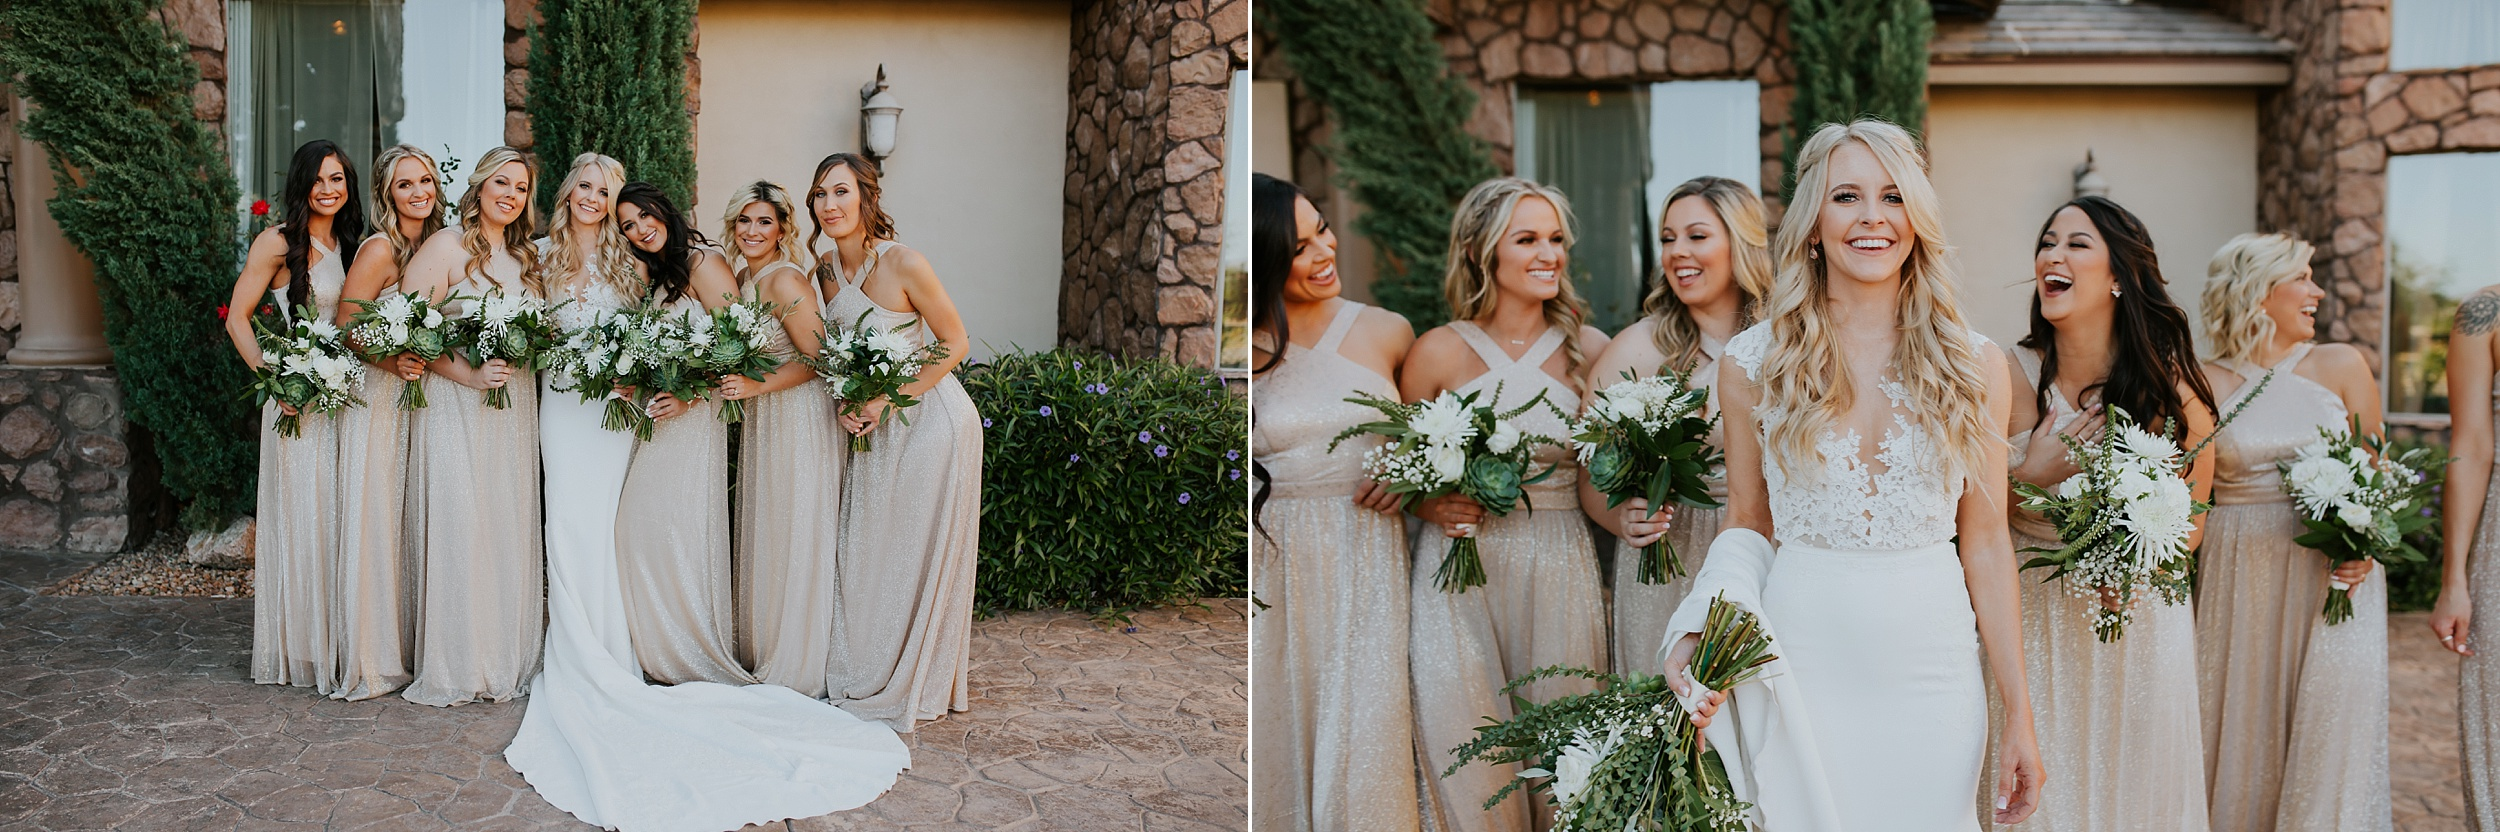 Meg+Bubba_Wedding_WeddingParty_Arizona-61.jpg